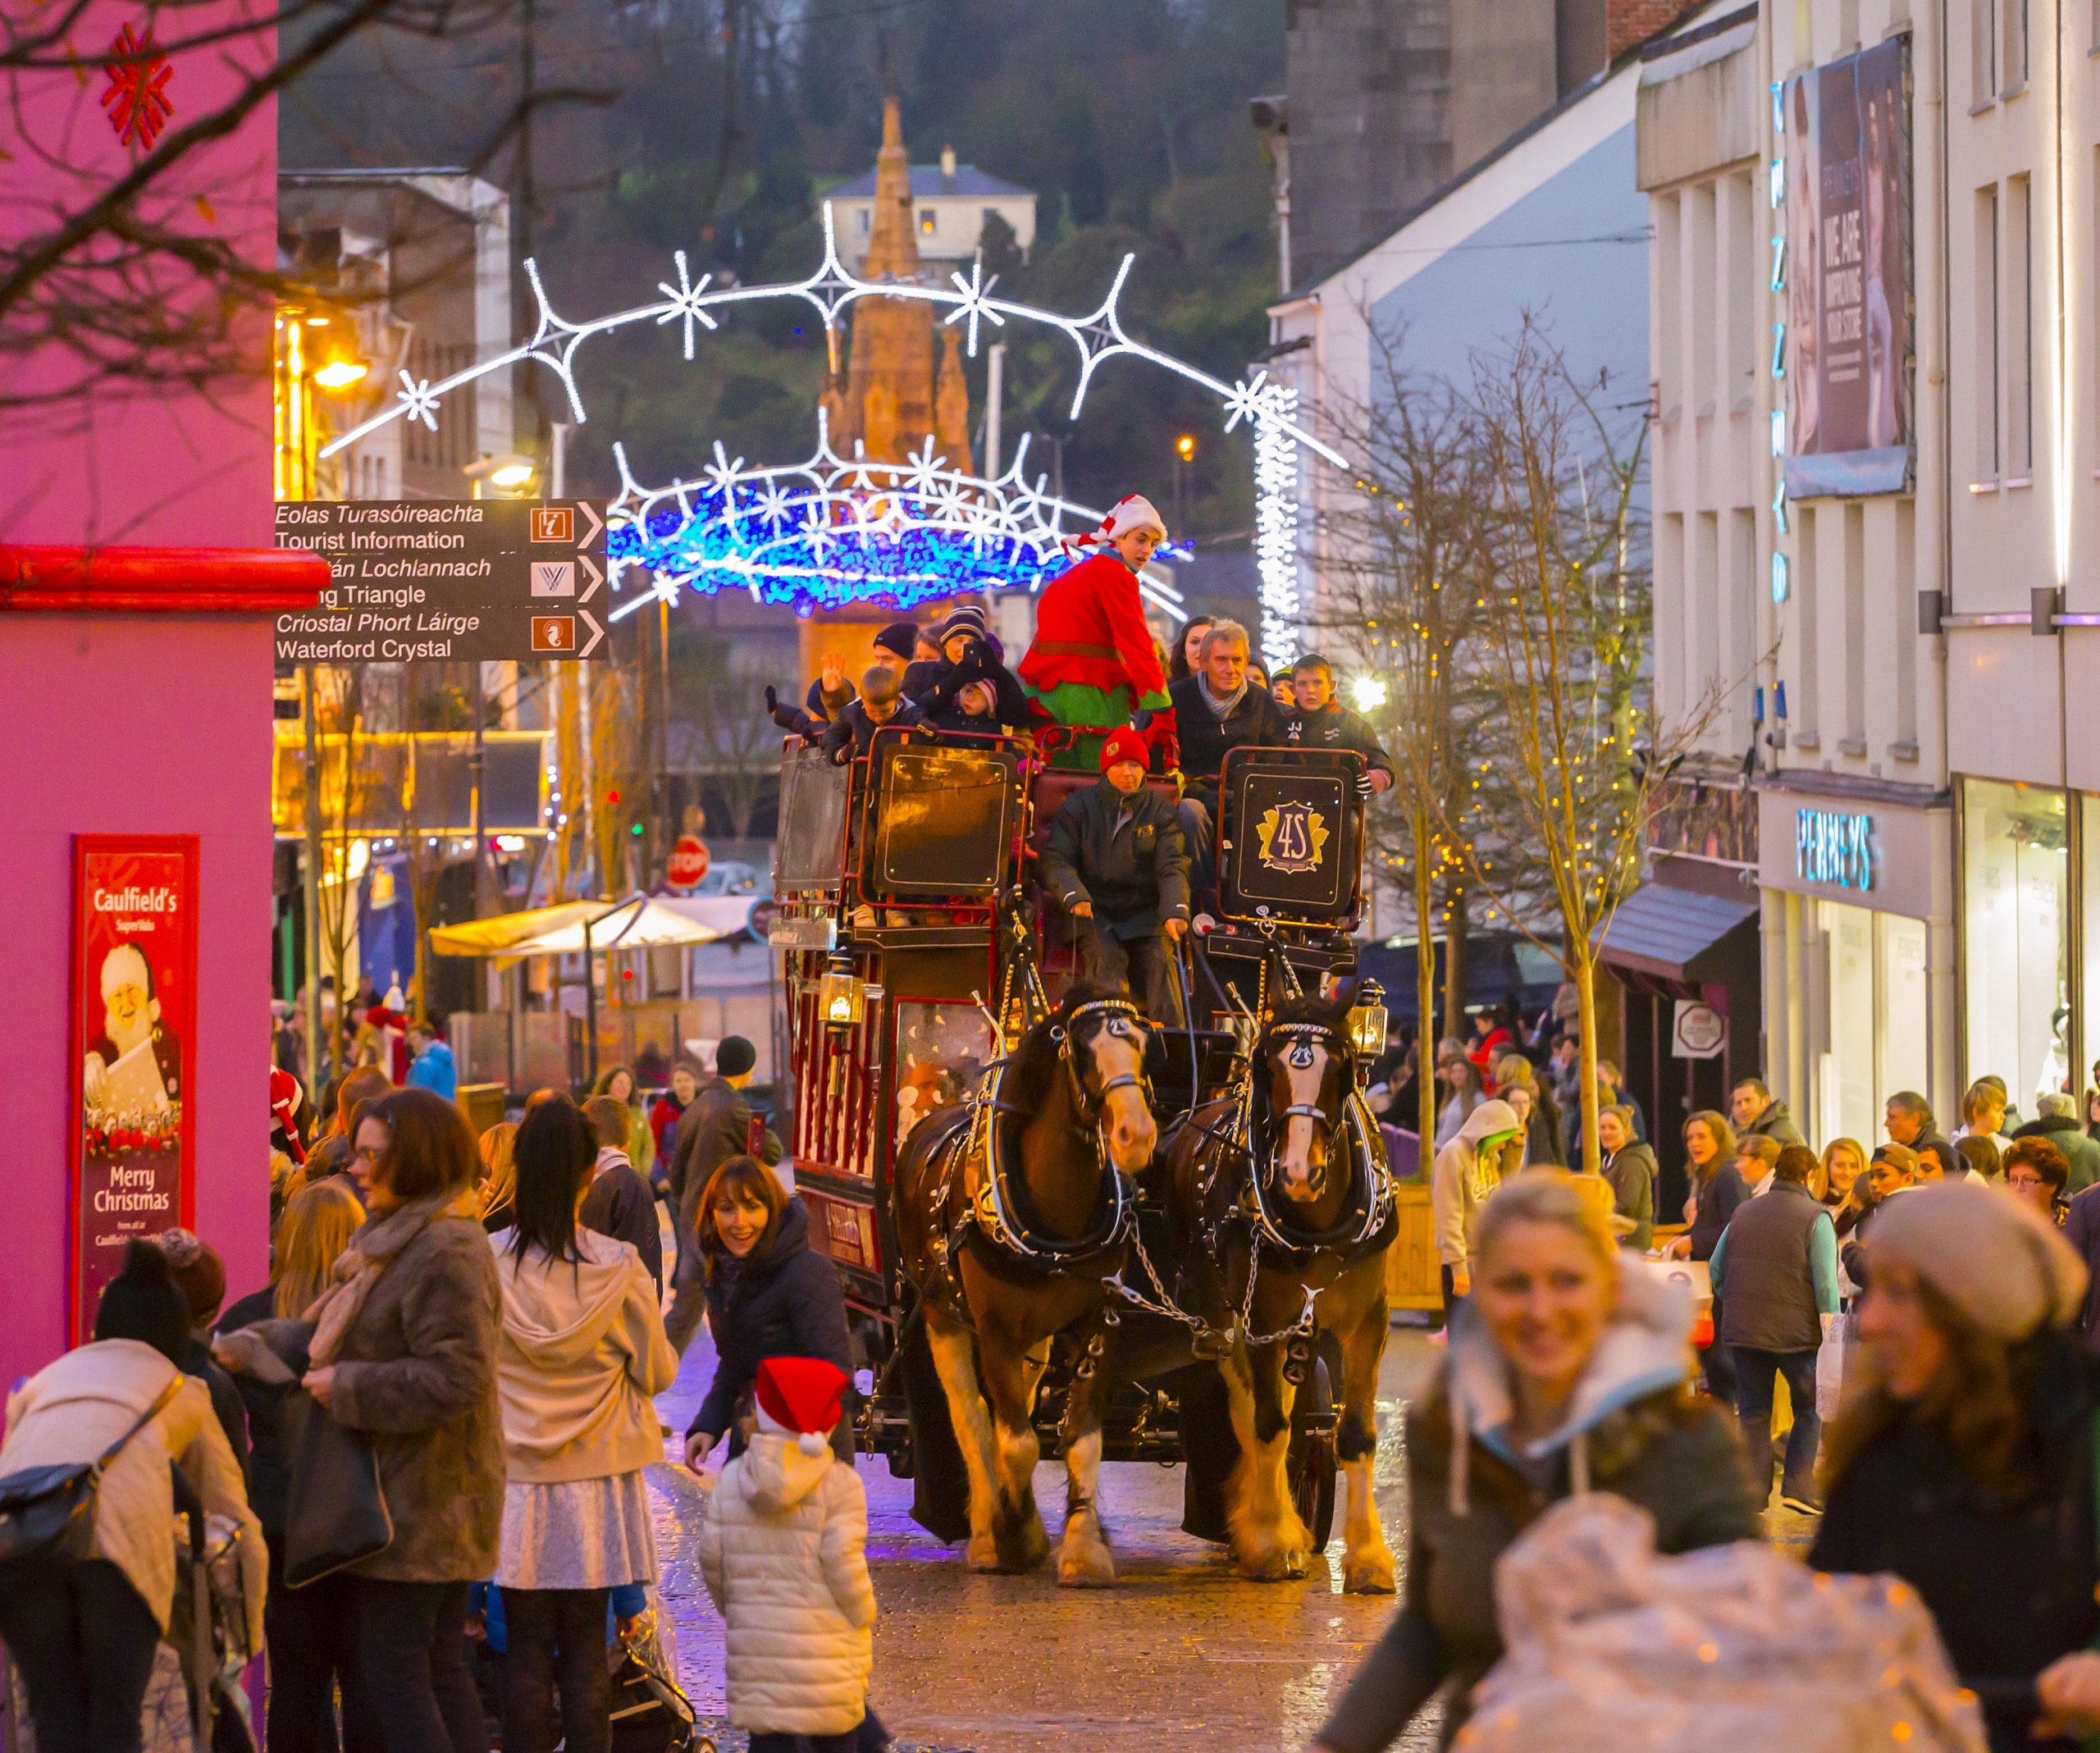 Owner of Waterford Shire Horses assures public of the safety and well-being of horses working with Winterval's horse drawn sleigh.